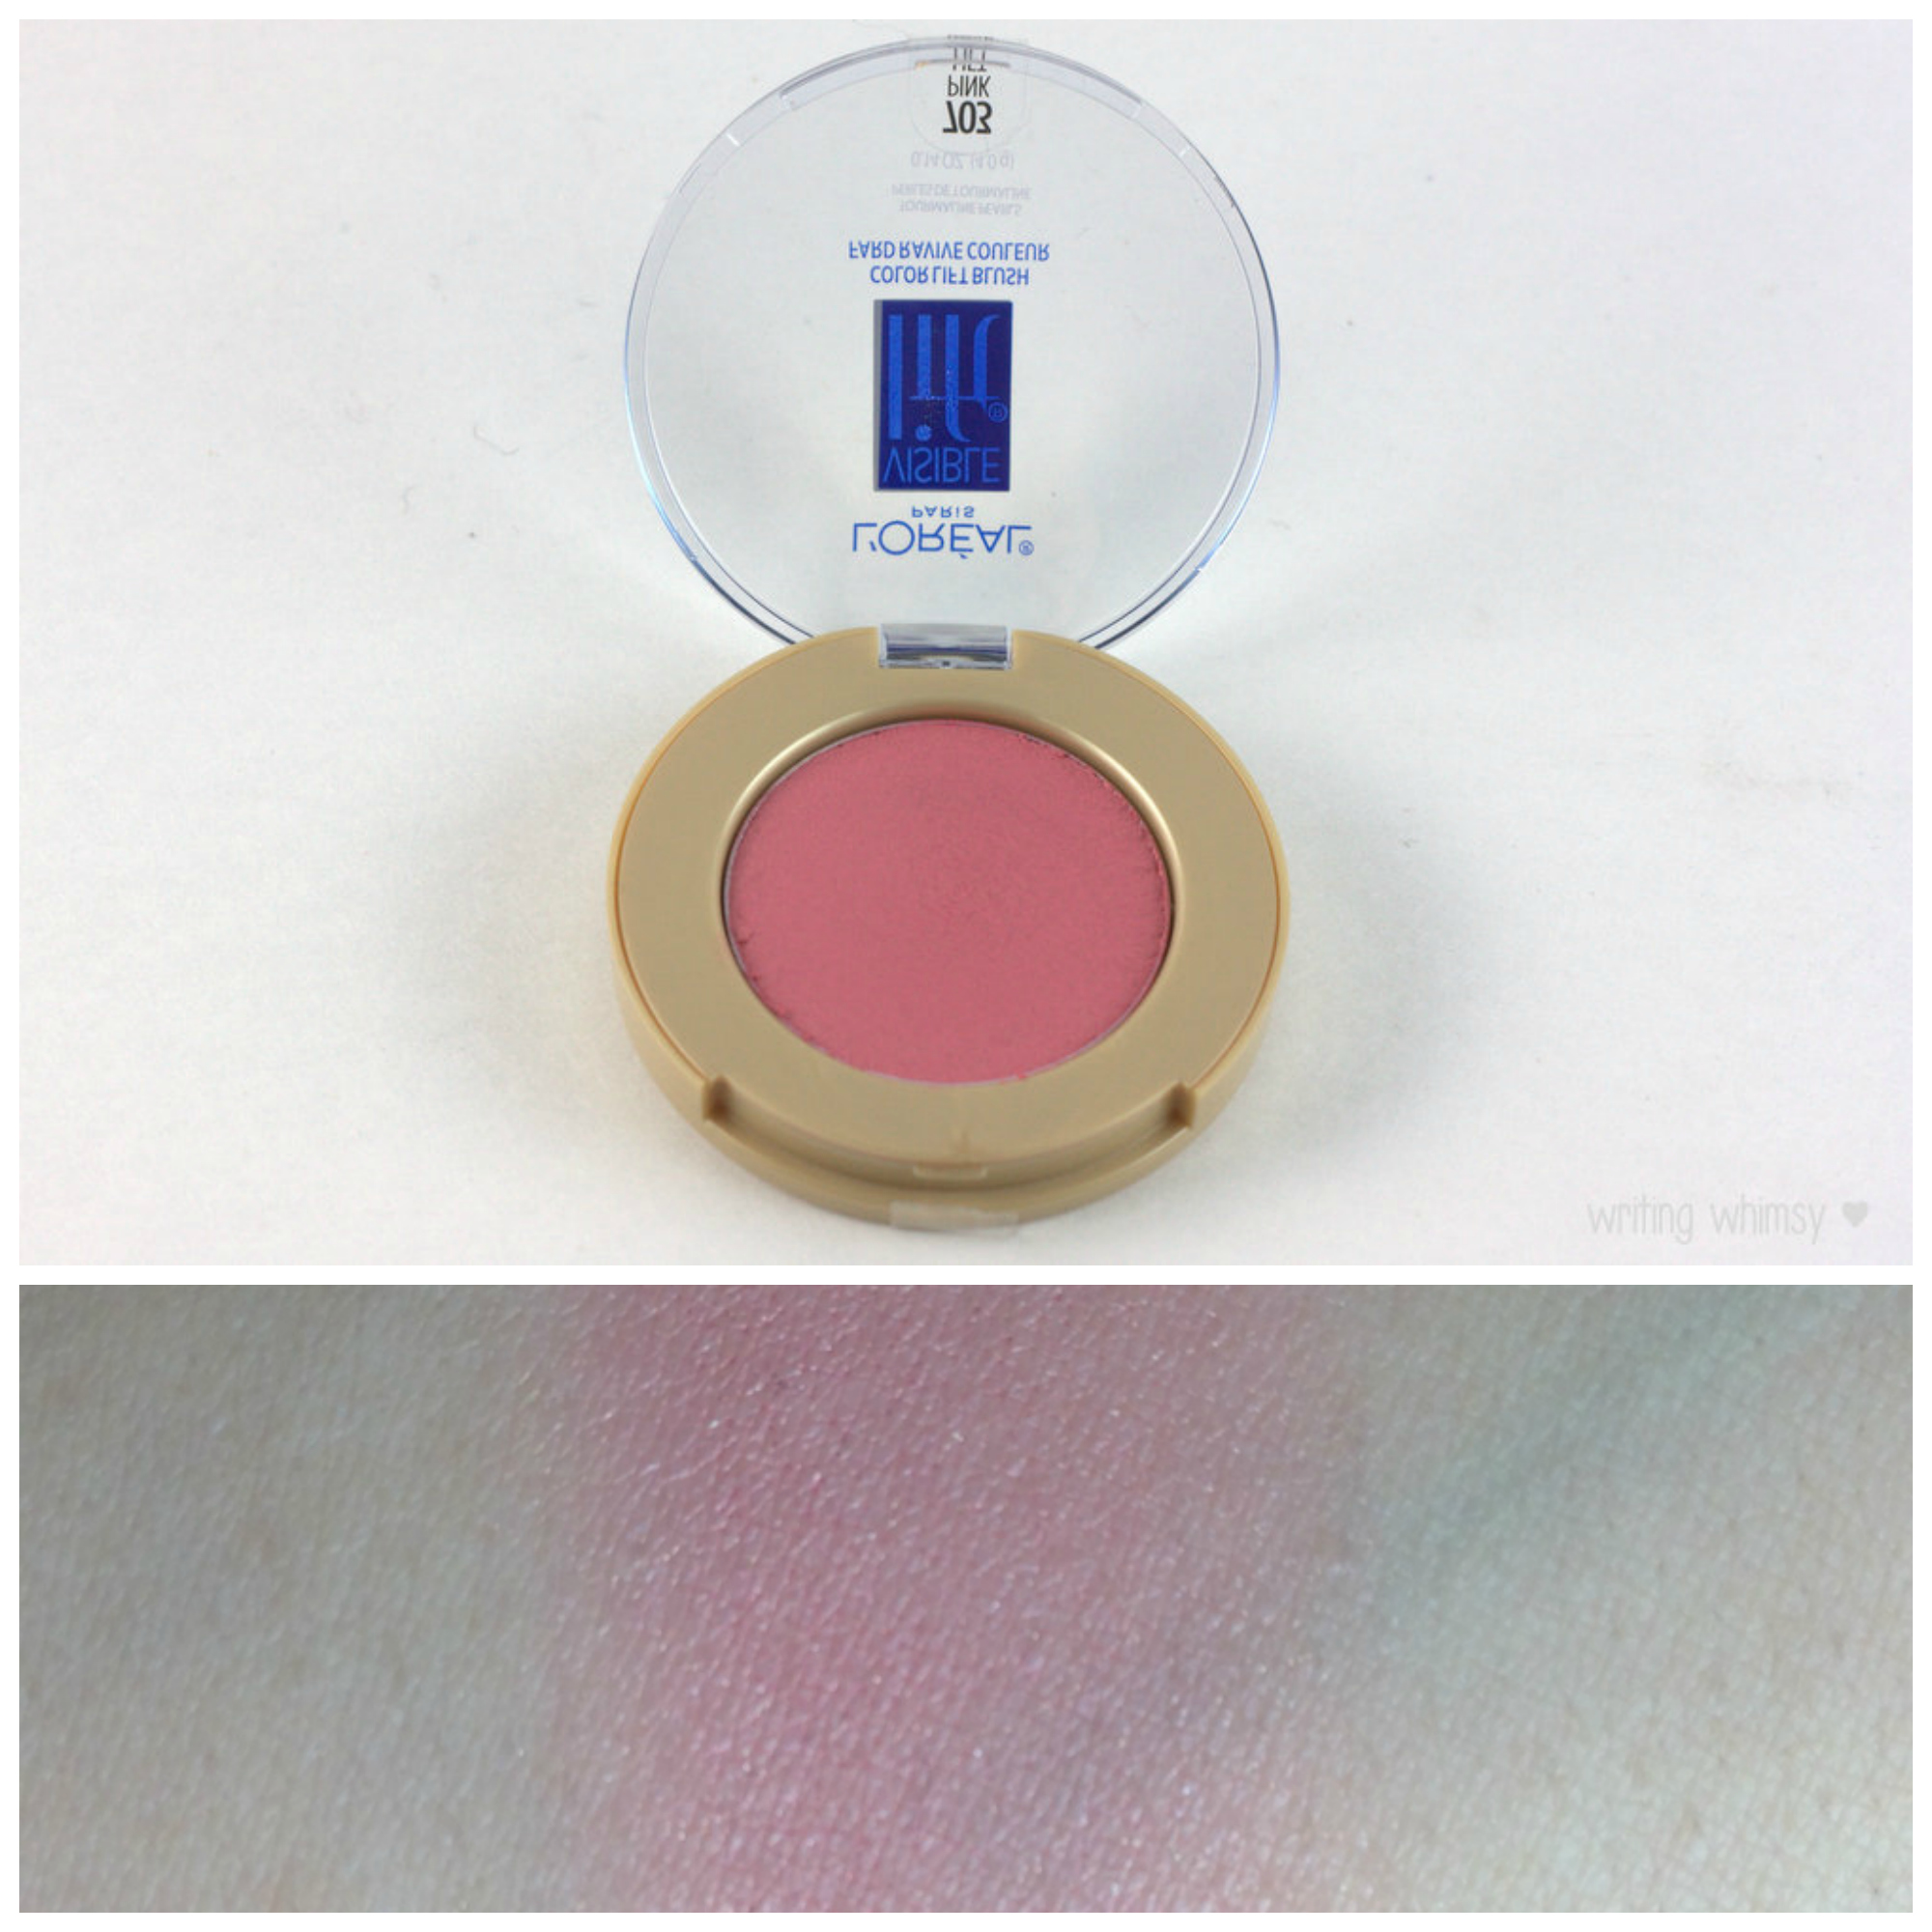 L'Oreal Visible Lift Color Lift Blush in Pink Lift Collage